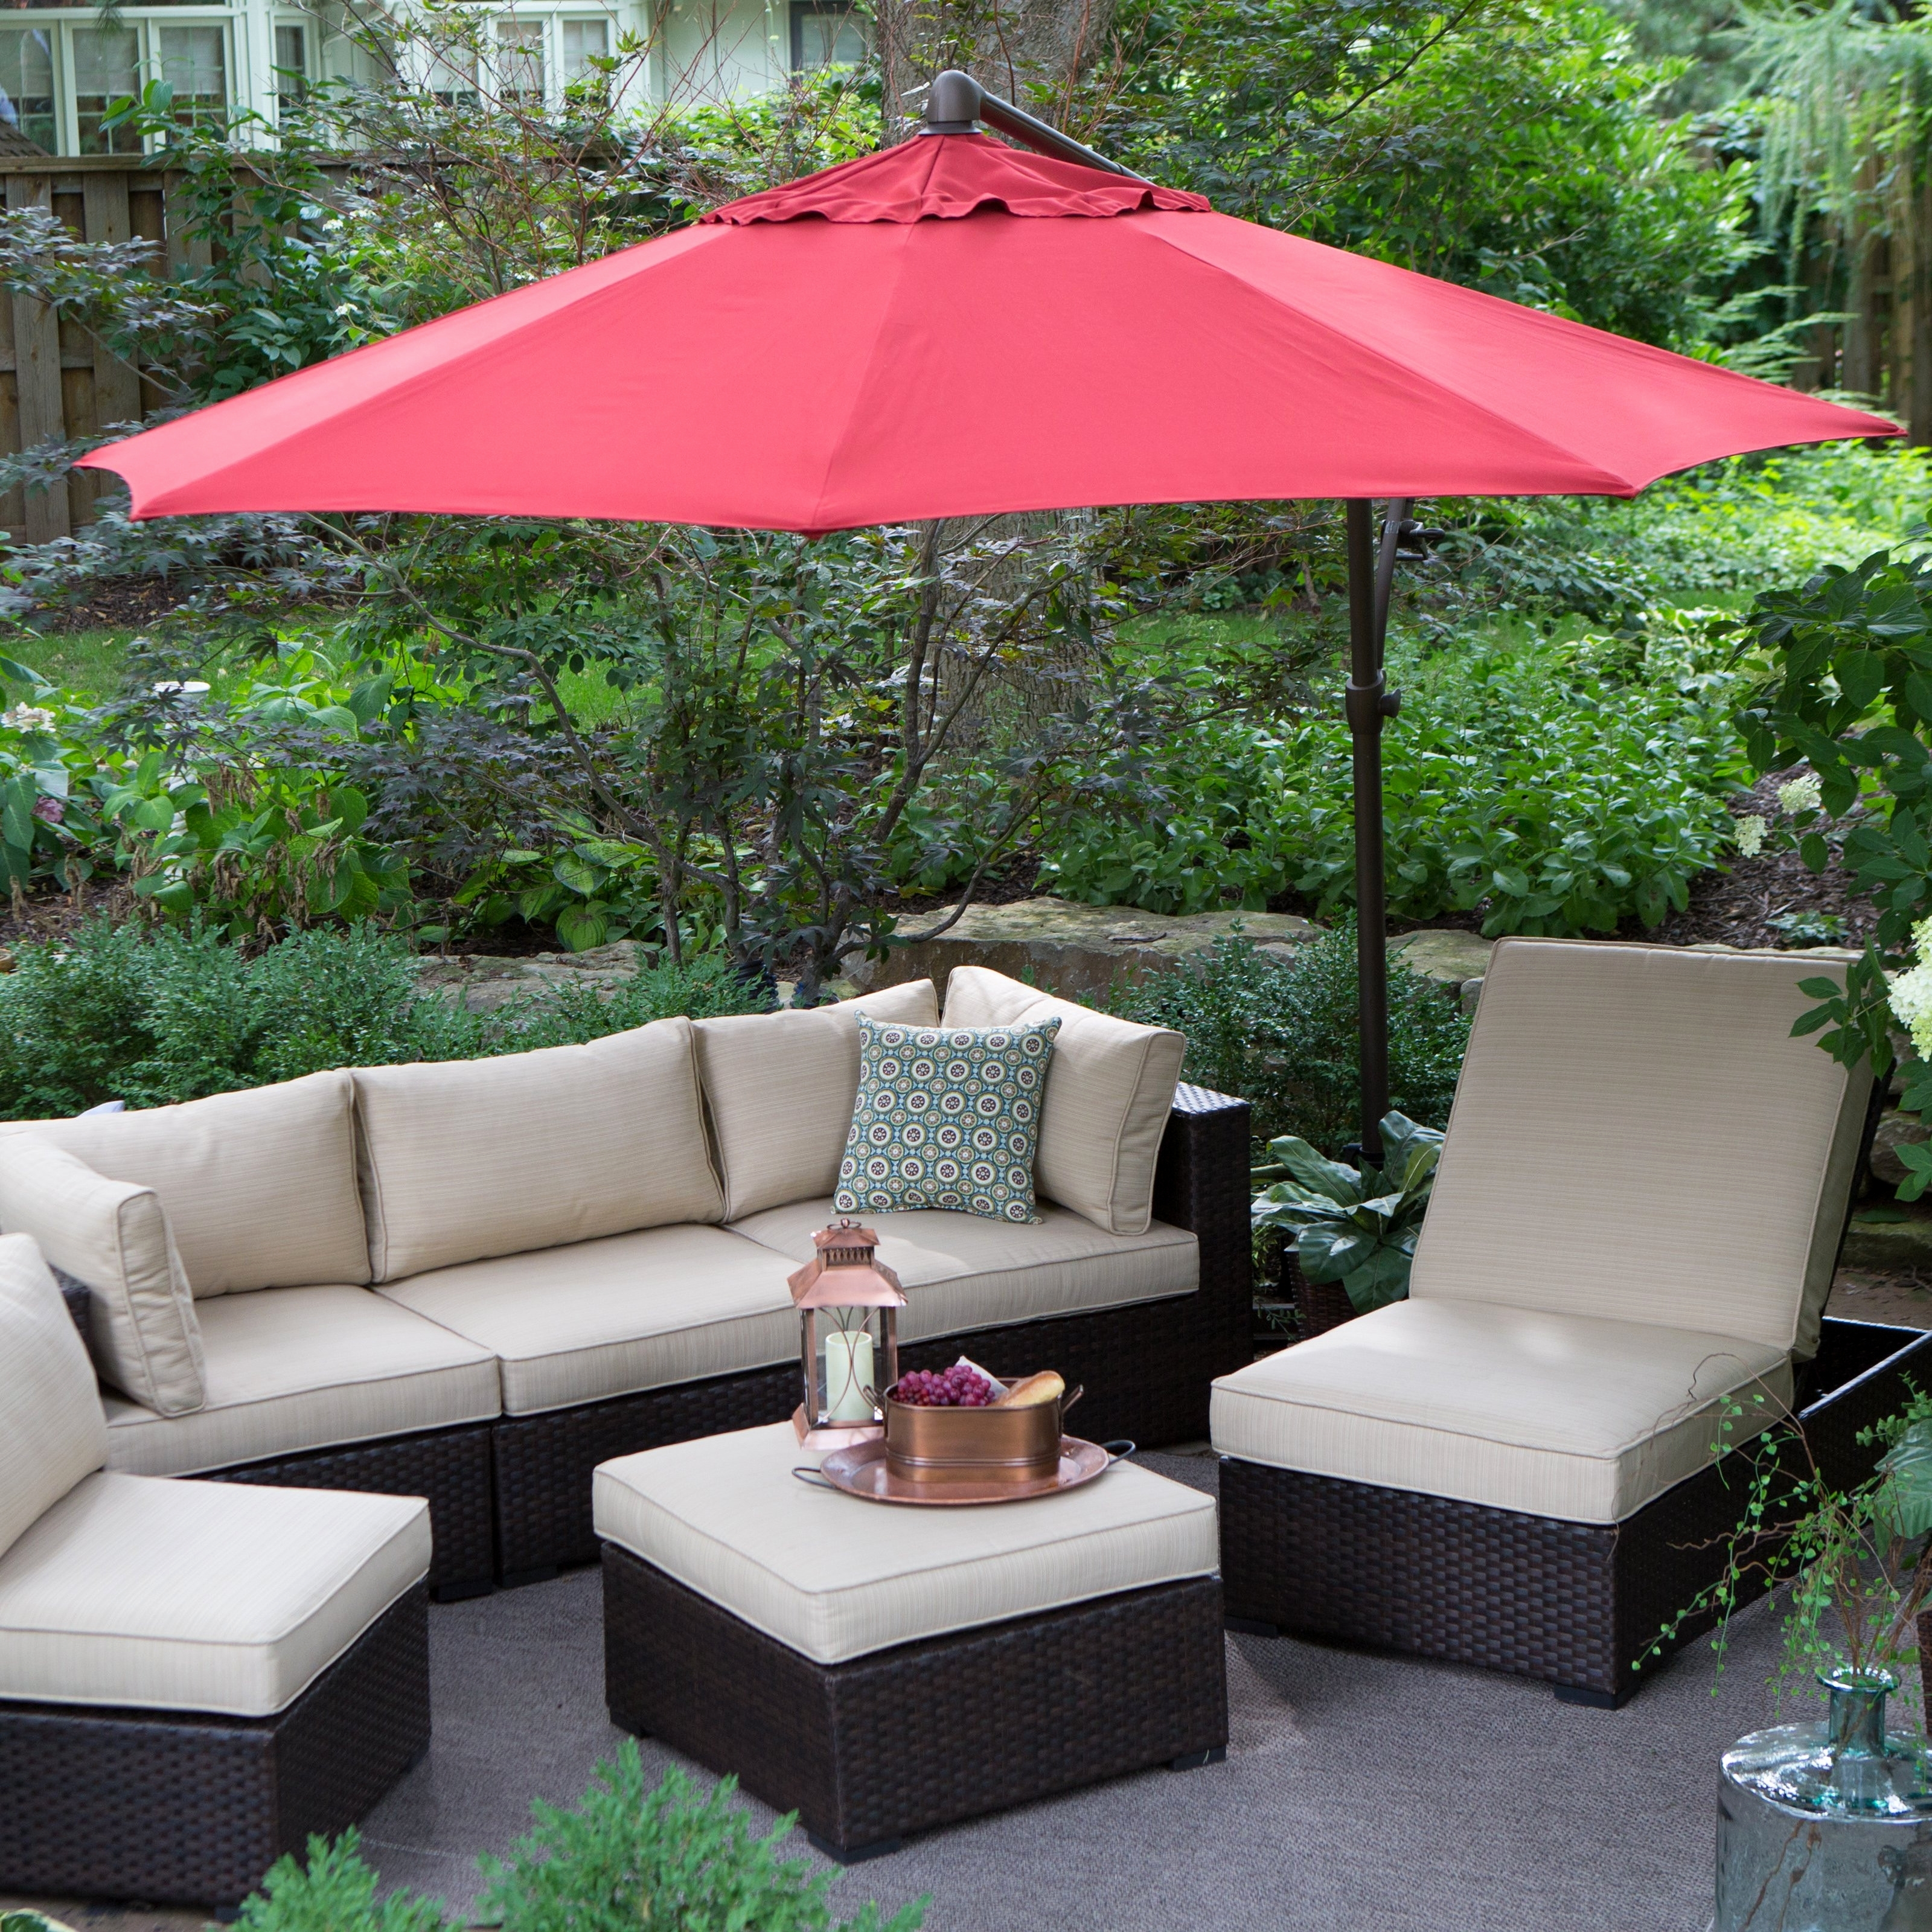 Widely Used Garden Treasures Patio Umbrellas With 20 Elegant Patio Furniture Umbrella Parts From 13 Garden Treasures (View 20 of 20)